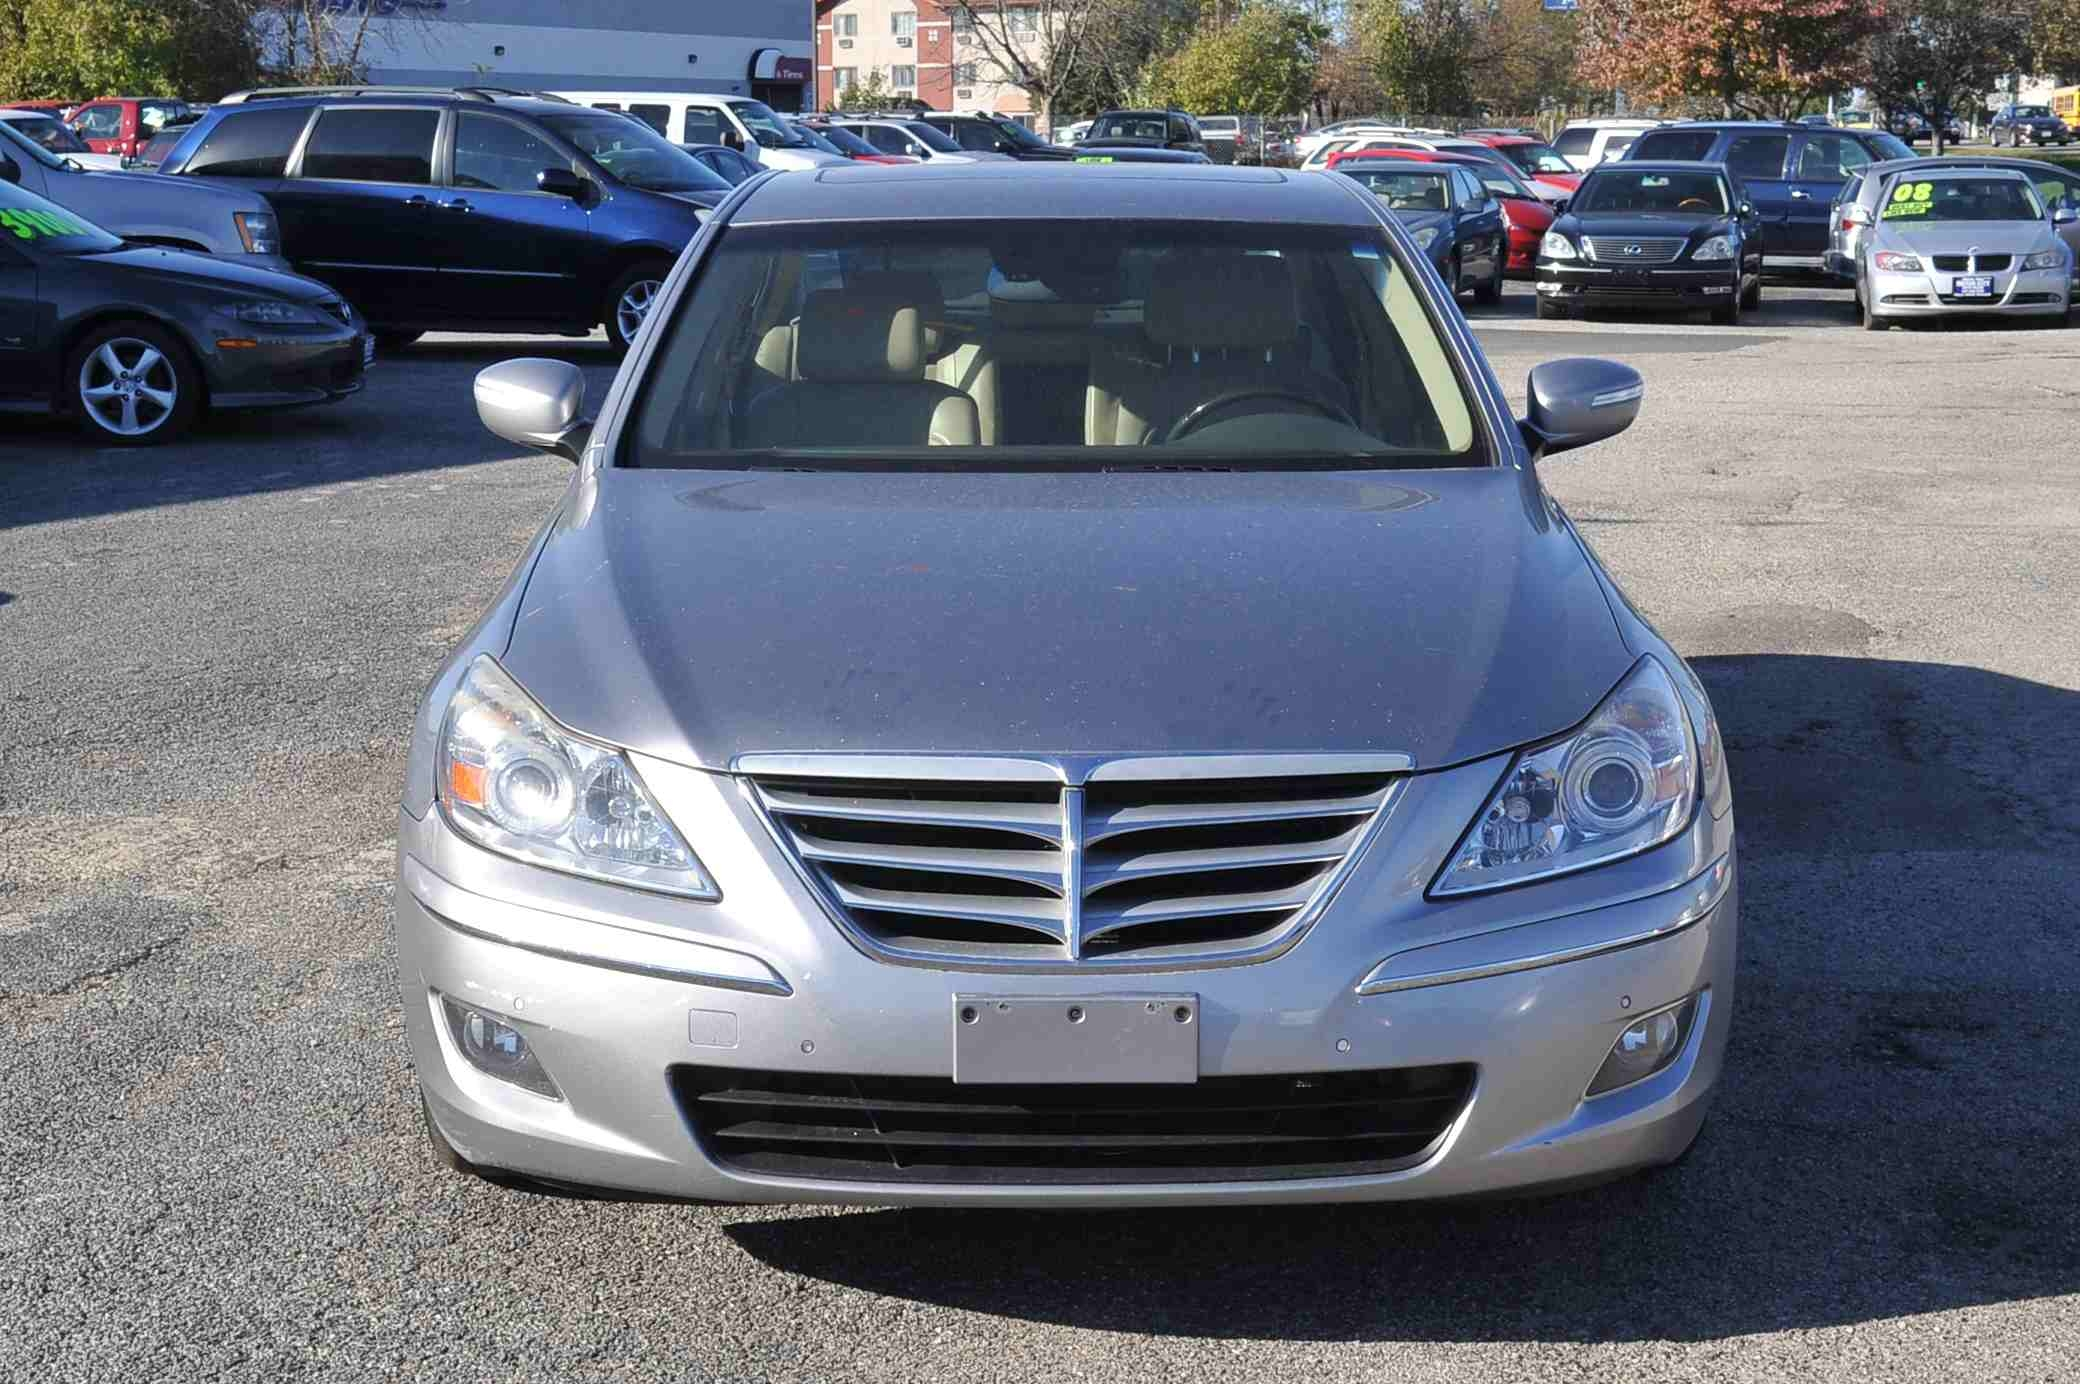 2009 Hyundai Genesis Silver Sedan Used Car Sale Gurnee Kenosha Mchenry Chicago Illinois